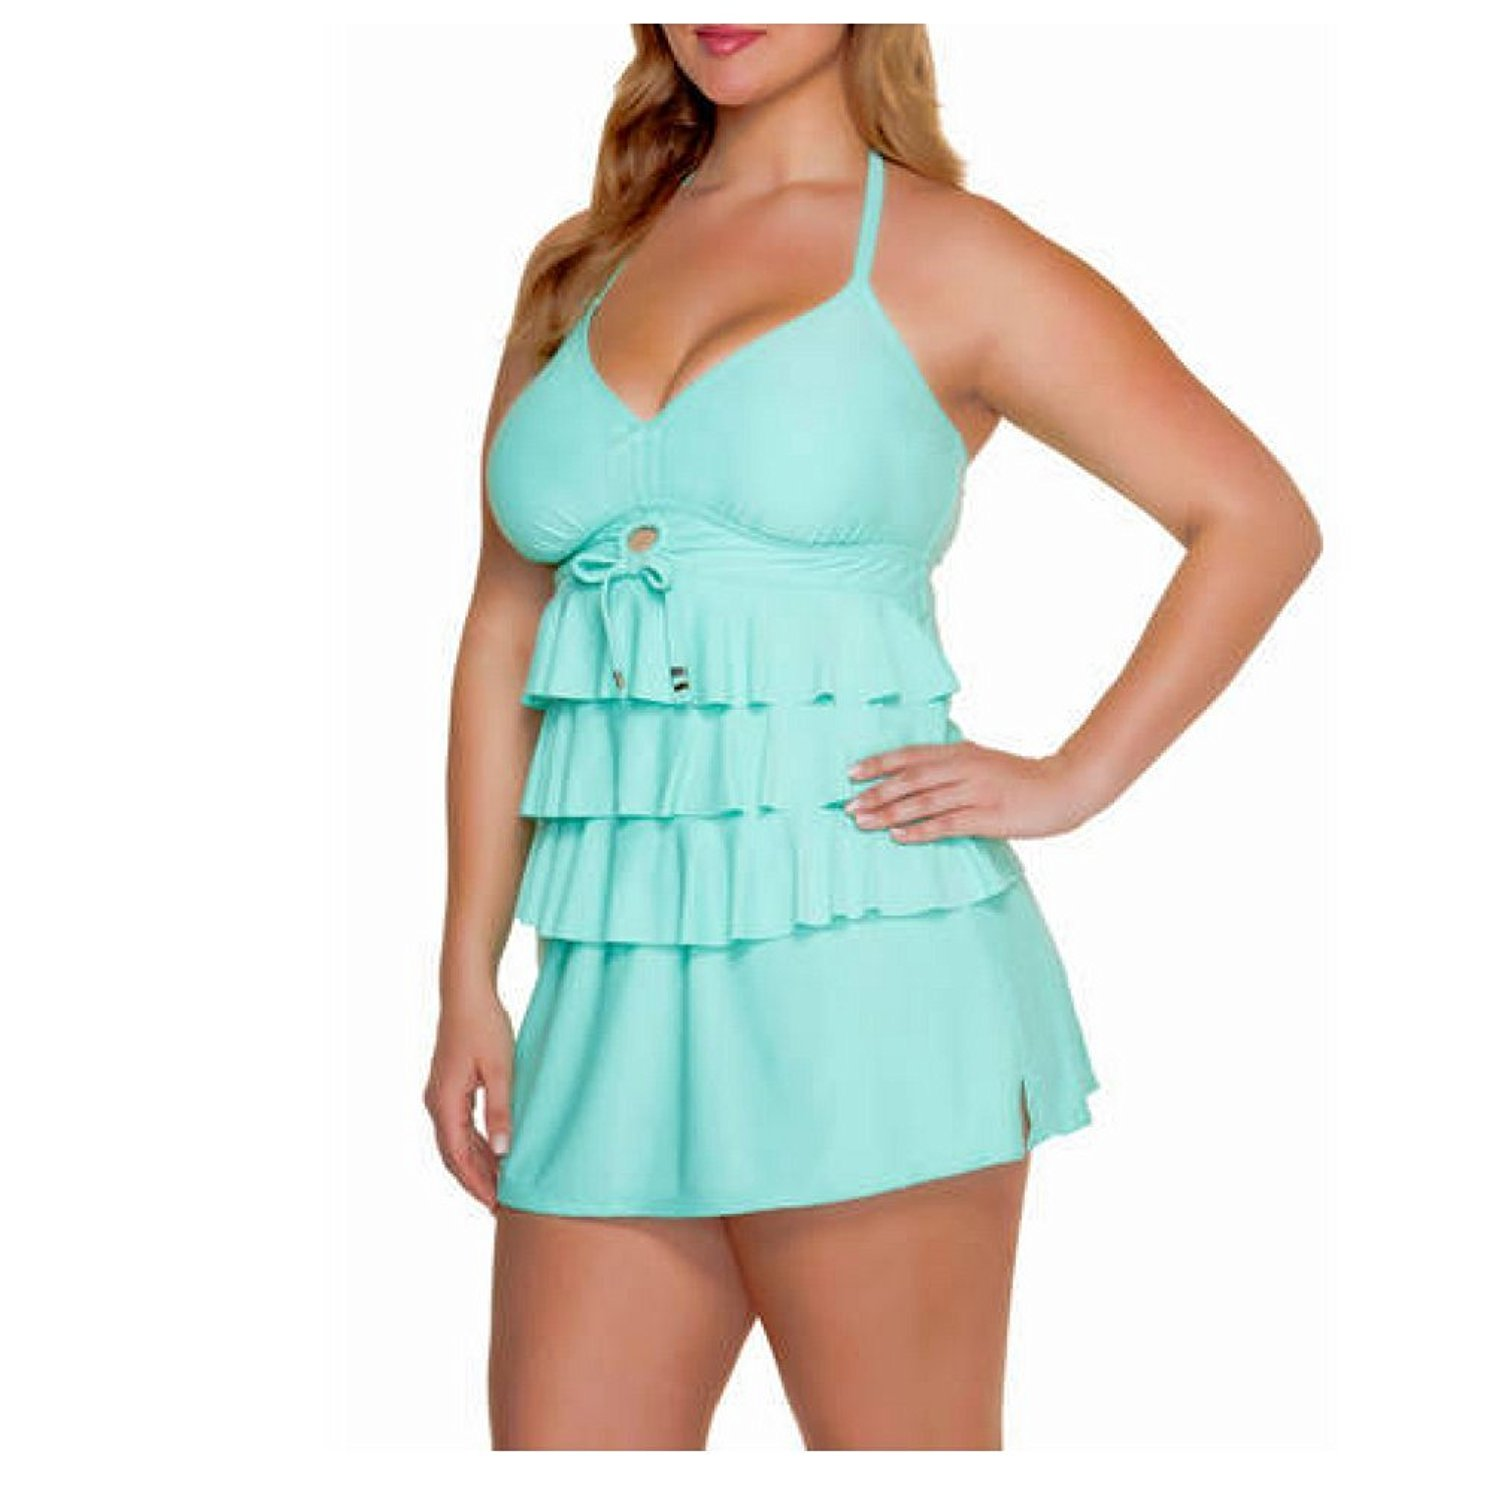 d27a87374a Get Quotations · Catalina Women s Plus-Size Tiered Ruffle Tankini Swimsuit  Top